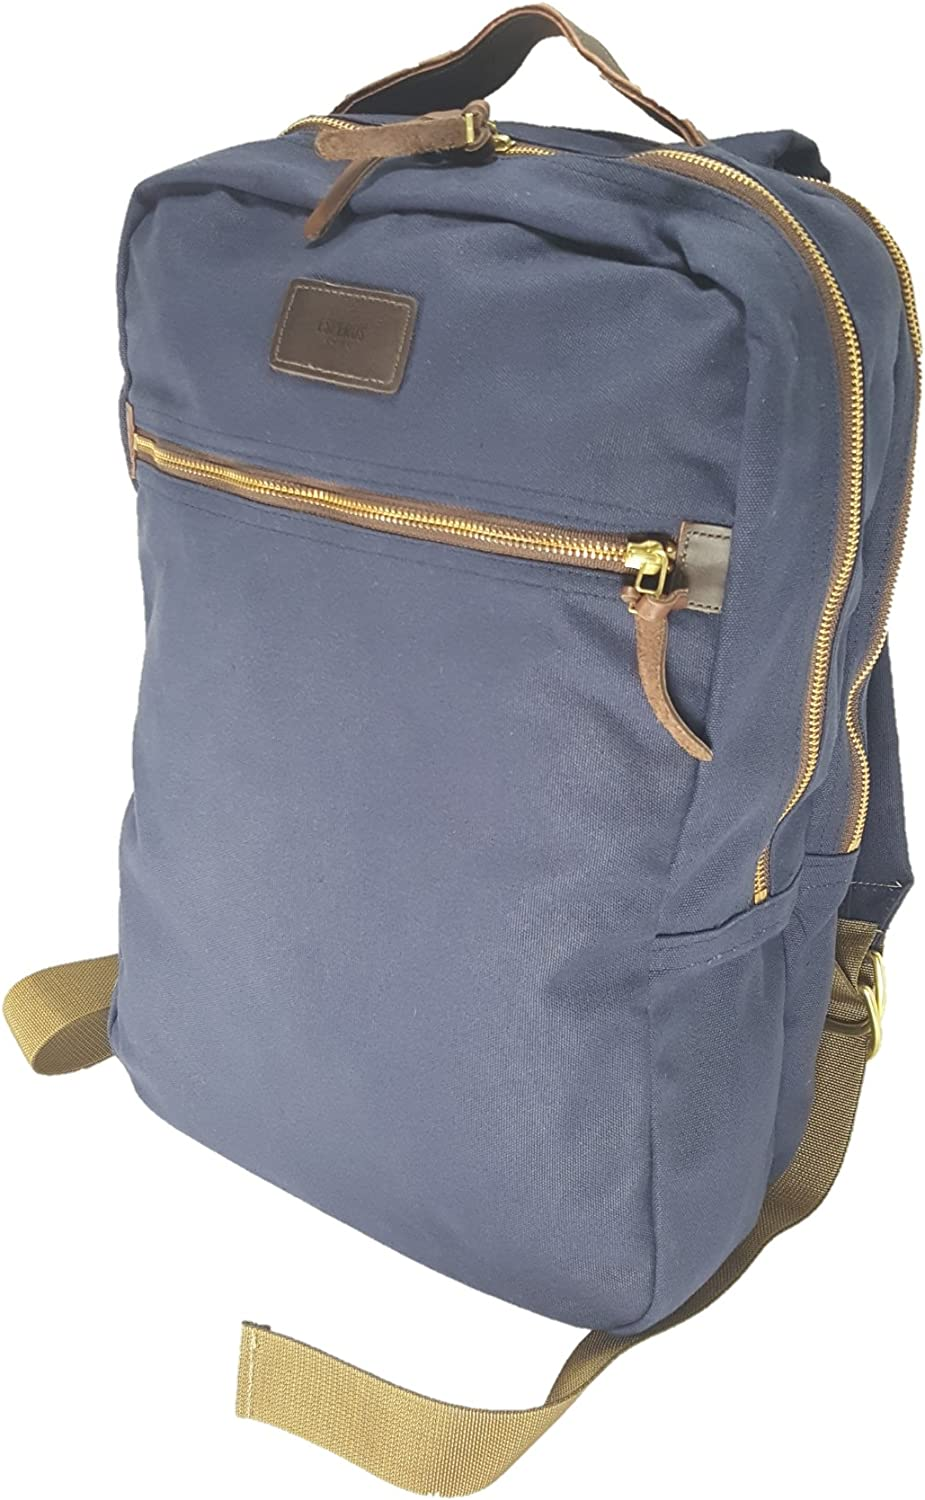 Soho Backpack Canvas with Leather Reinforcement Olive Green